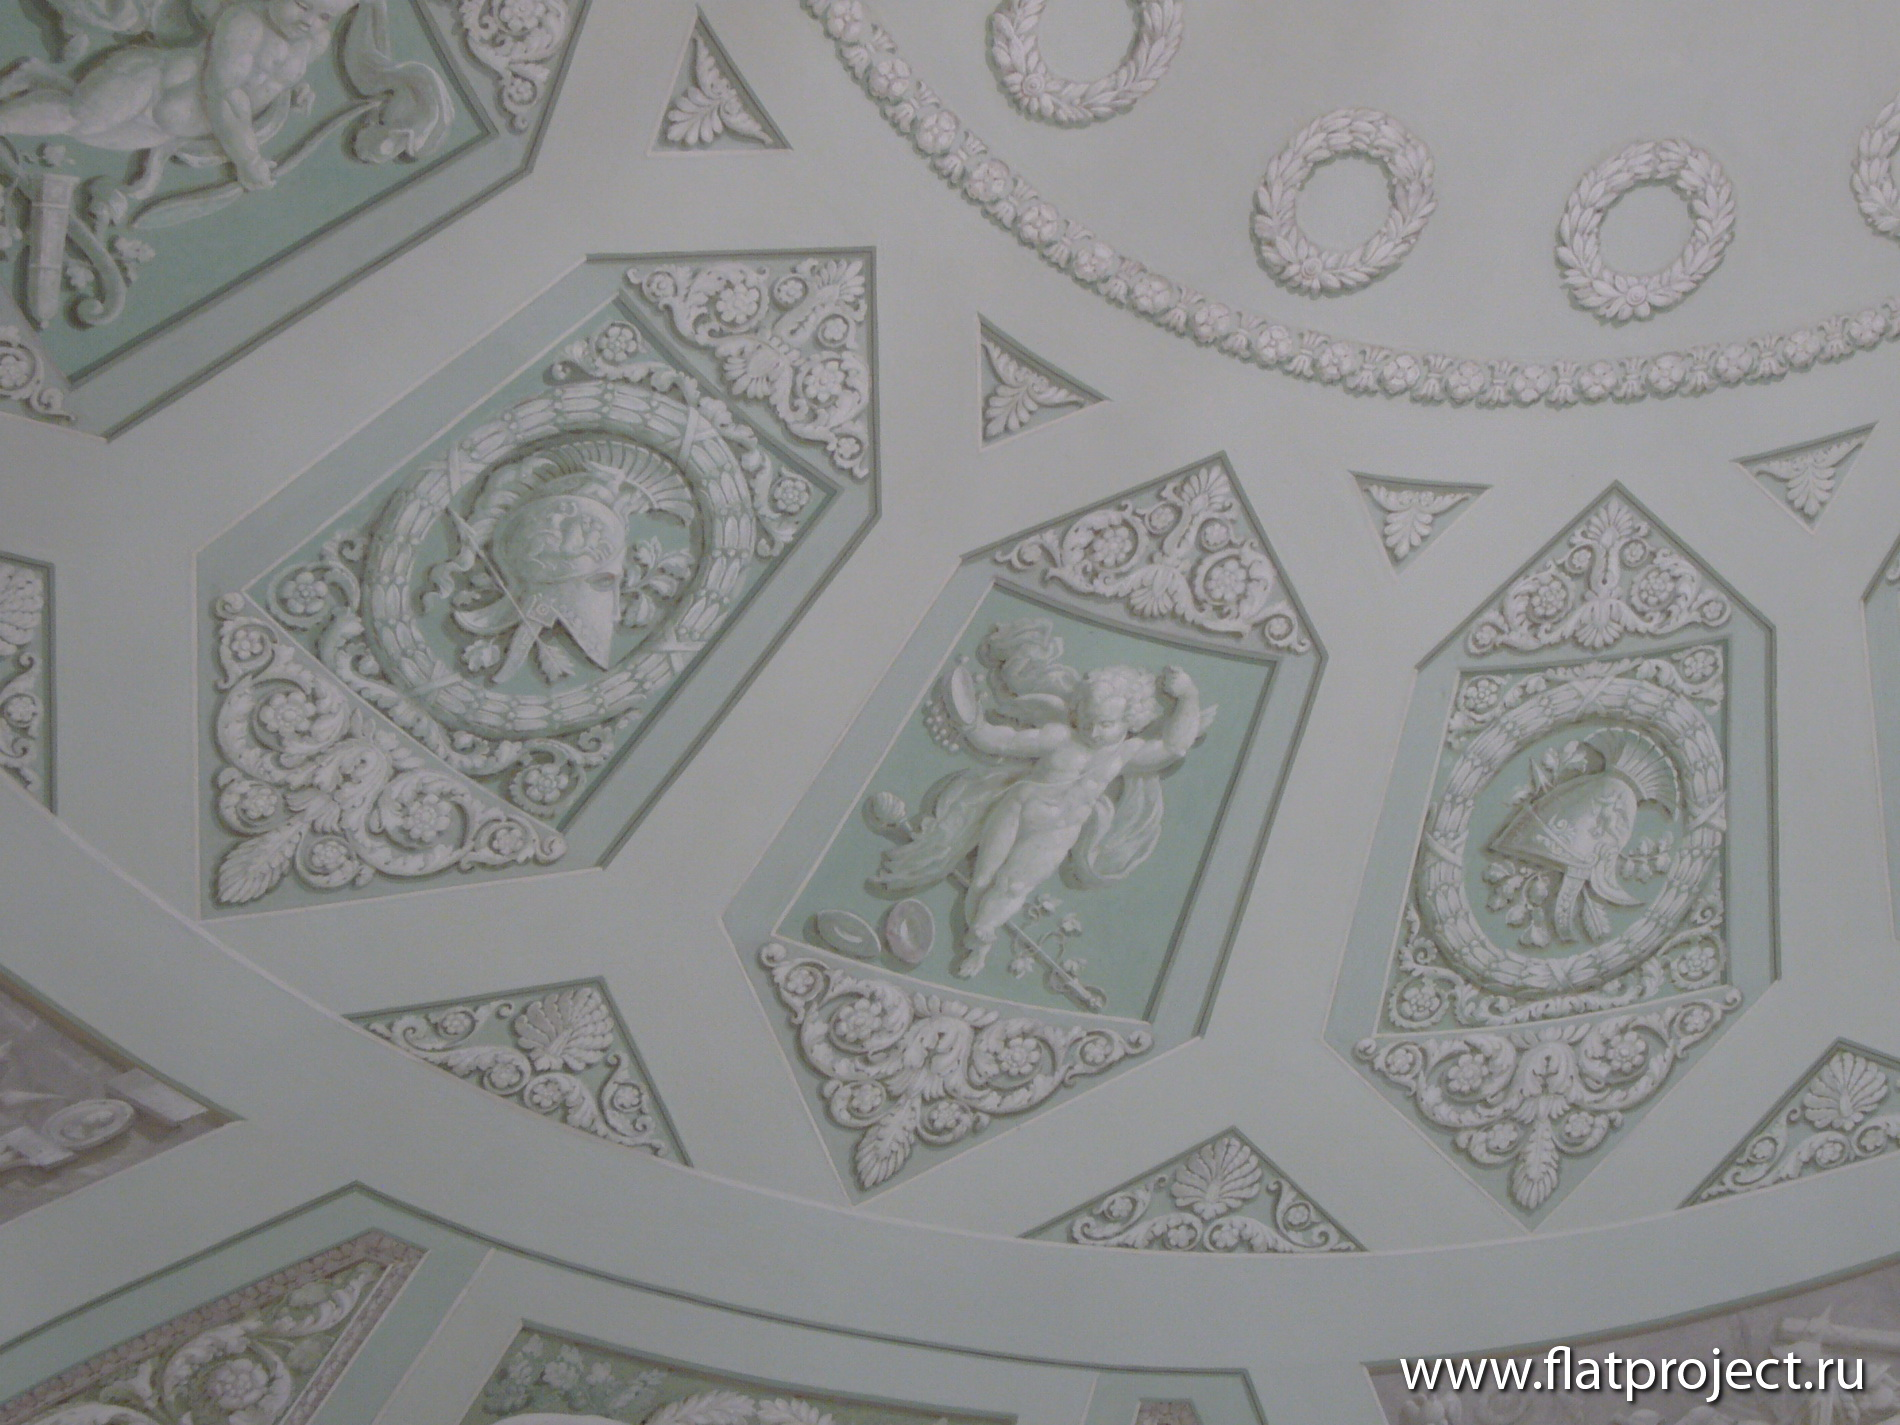 The State Russian museum interiors – photo 25